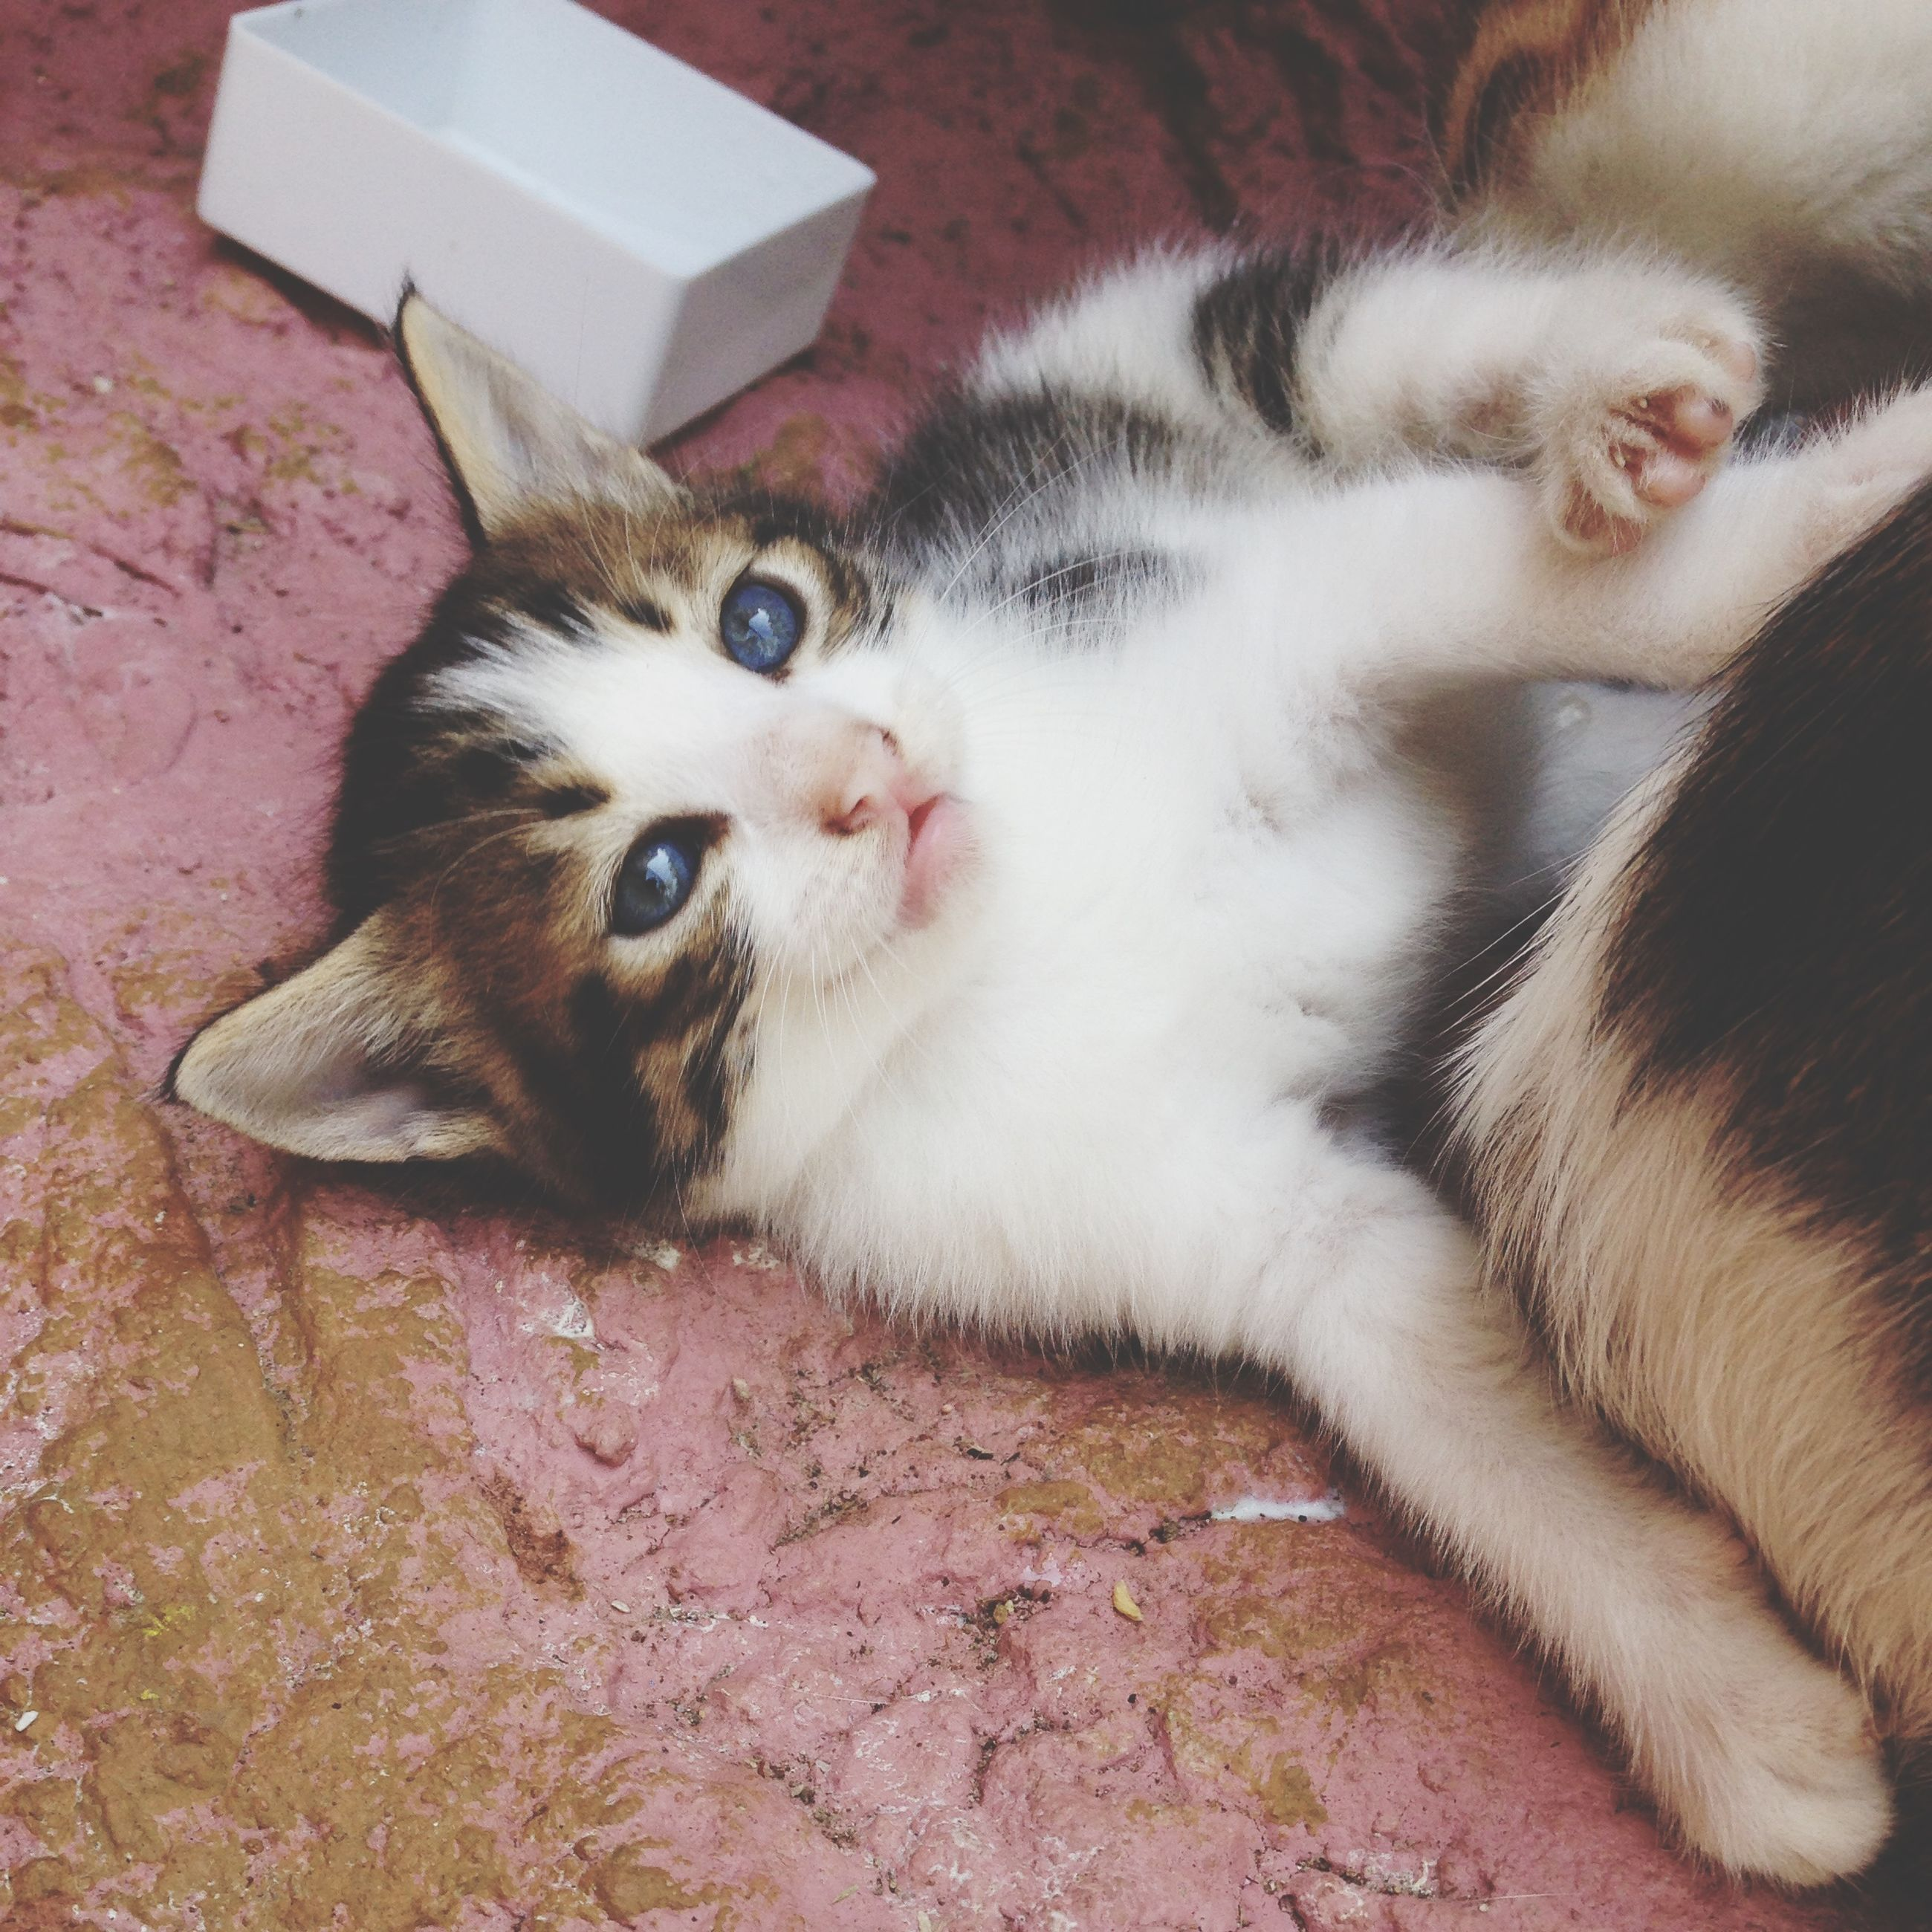 domestic animals, pets, animal themes, mammal, one animal, domestic cat, cat, feline, looking at camera, indoors, portrait, whisker, relaxation, lying down, high angle view, close-up, resting, young animal, kitten, home interior